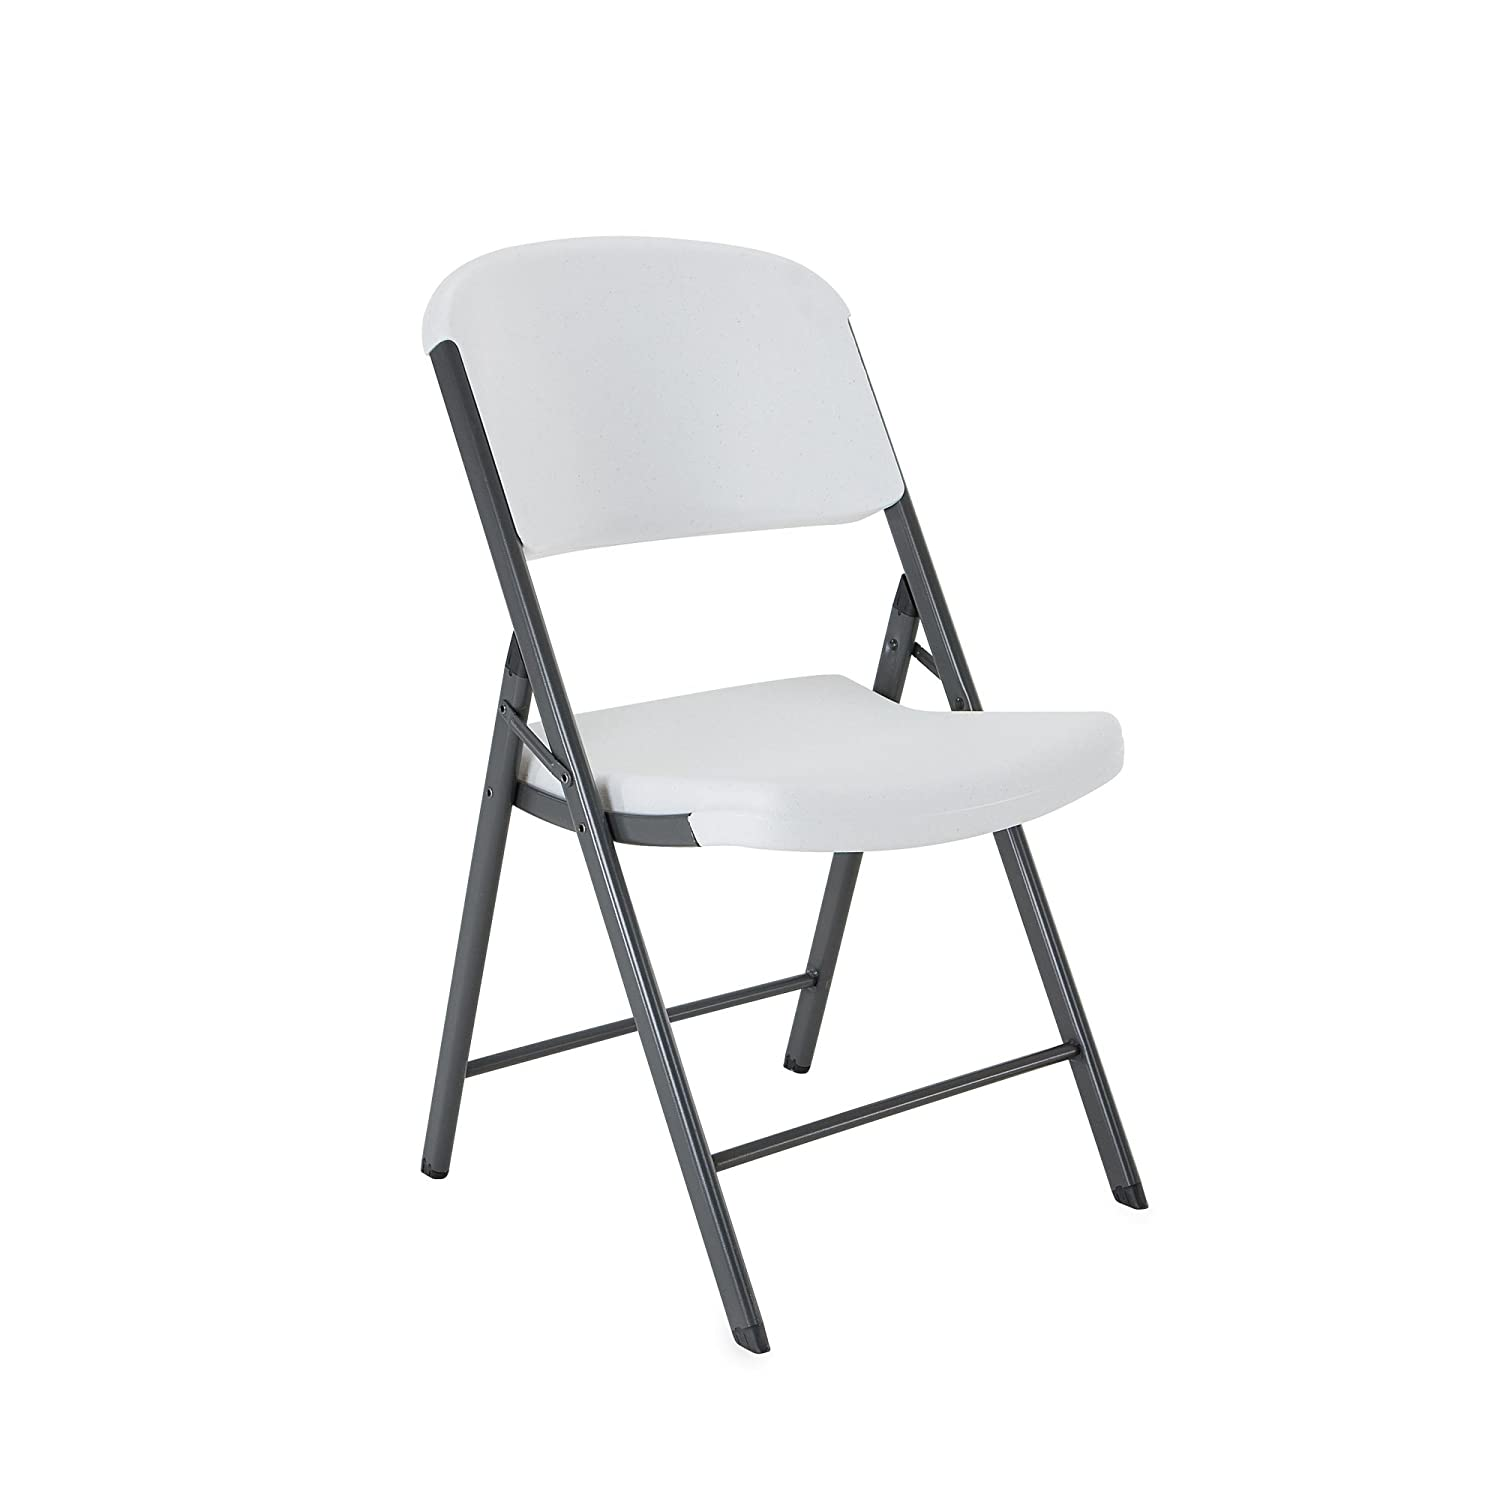 White resin folding chairs - Amazon Com Lifetime 42804 Folding Chair White Granite Pack Of 4 Garden Outdoor